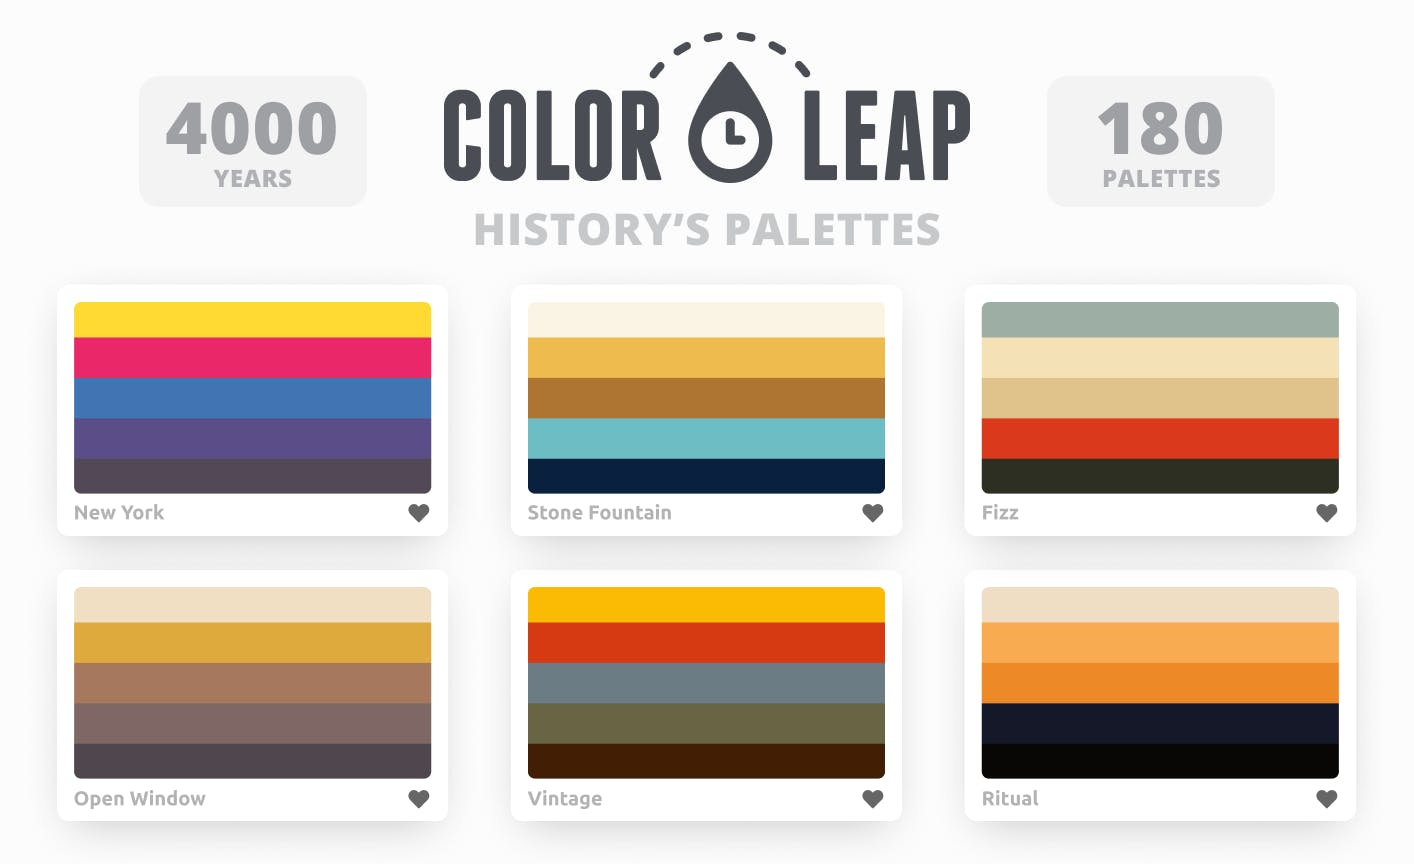 Color Leap App: Color palettes used in different historical eras - 1